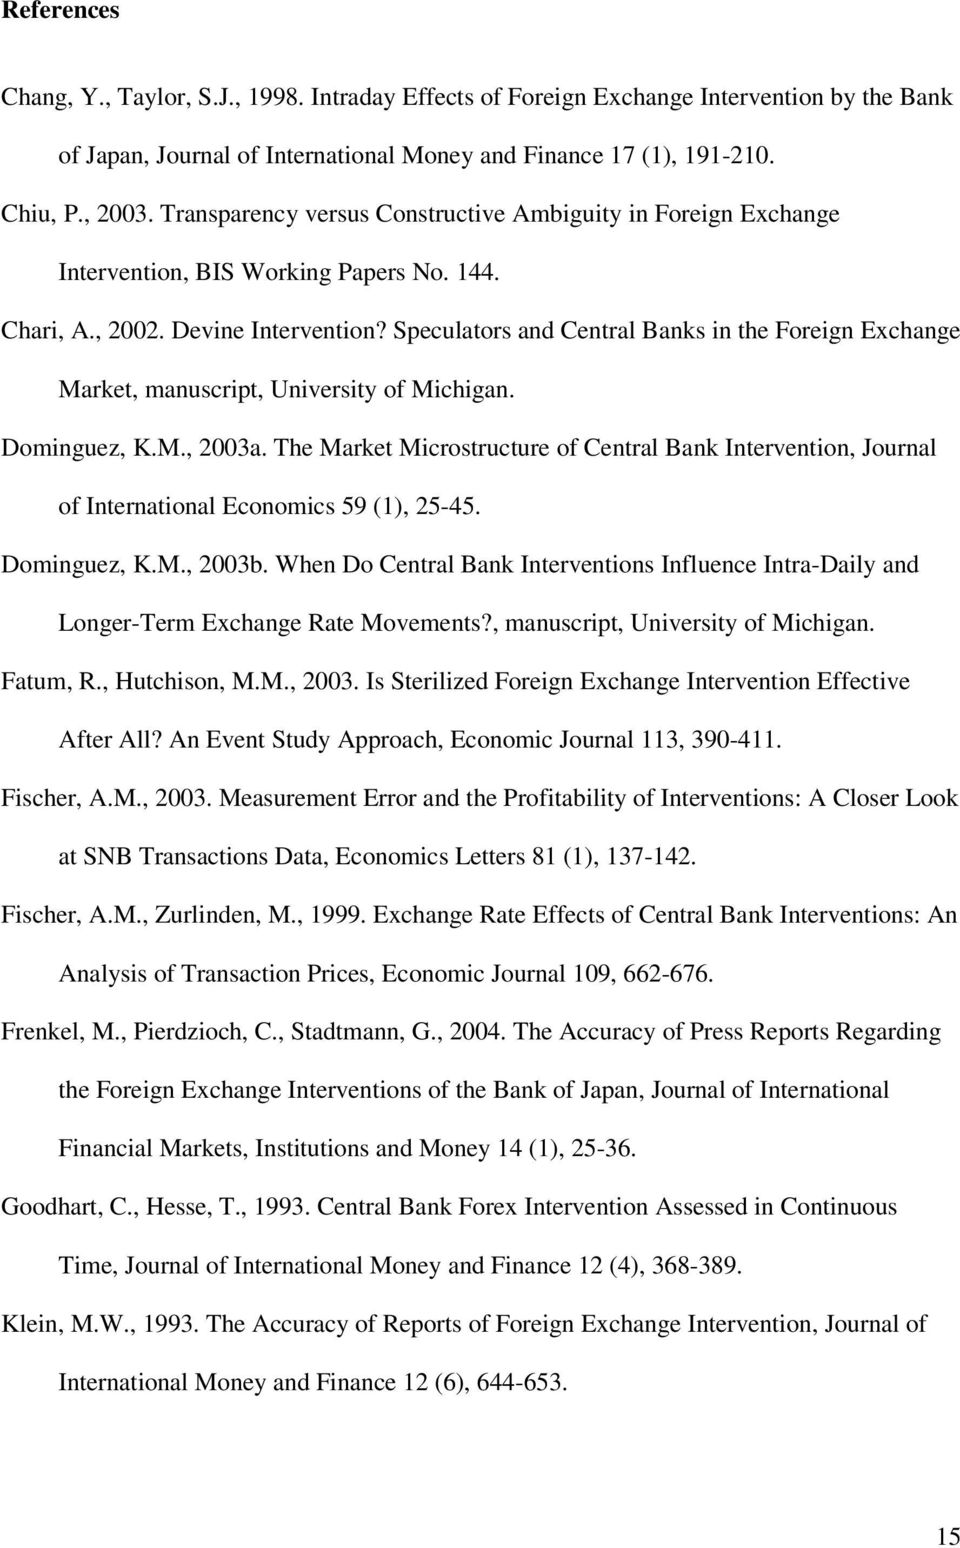 Speculators and Central Banks in the Foreign Exchange Market, manuscript, University of Michigan. Dominguez, K.M., 2003a.